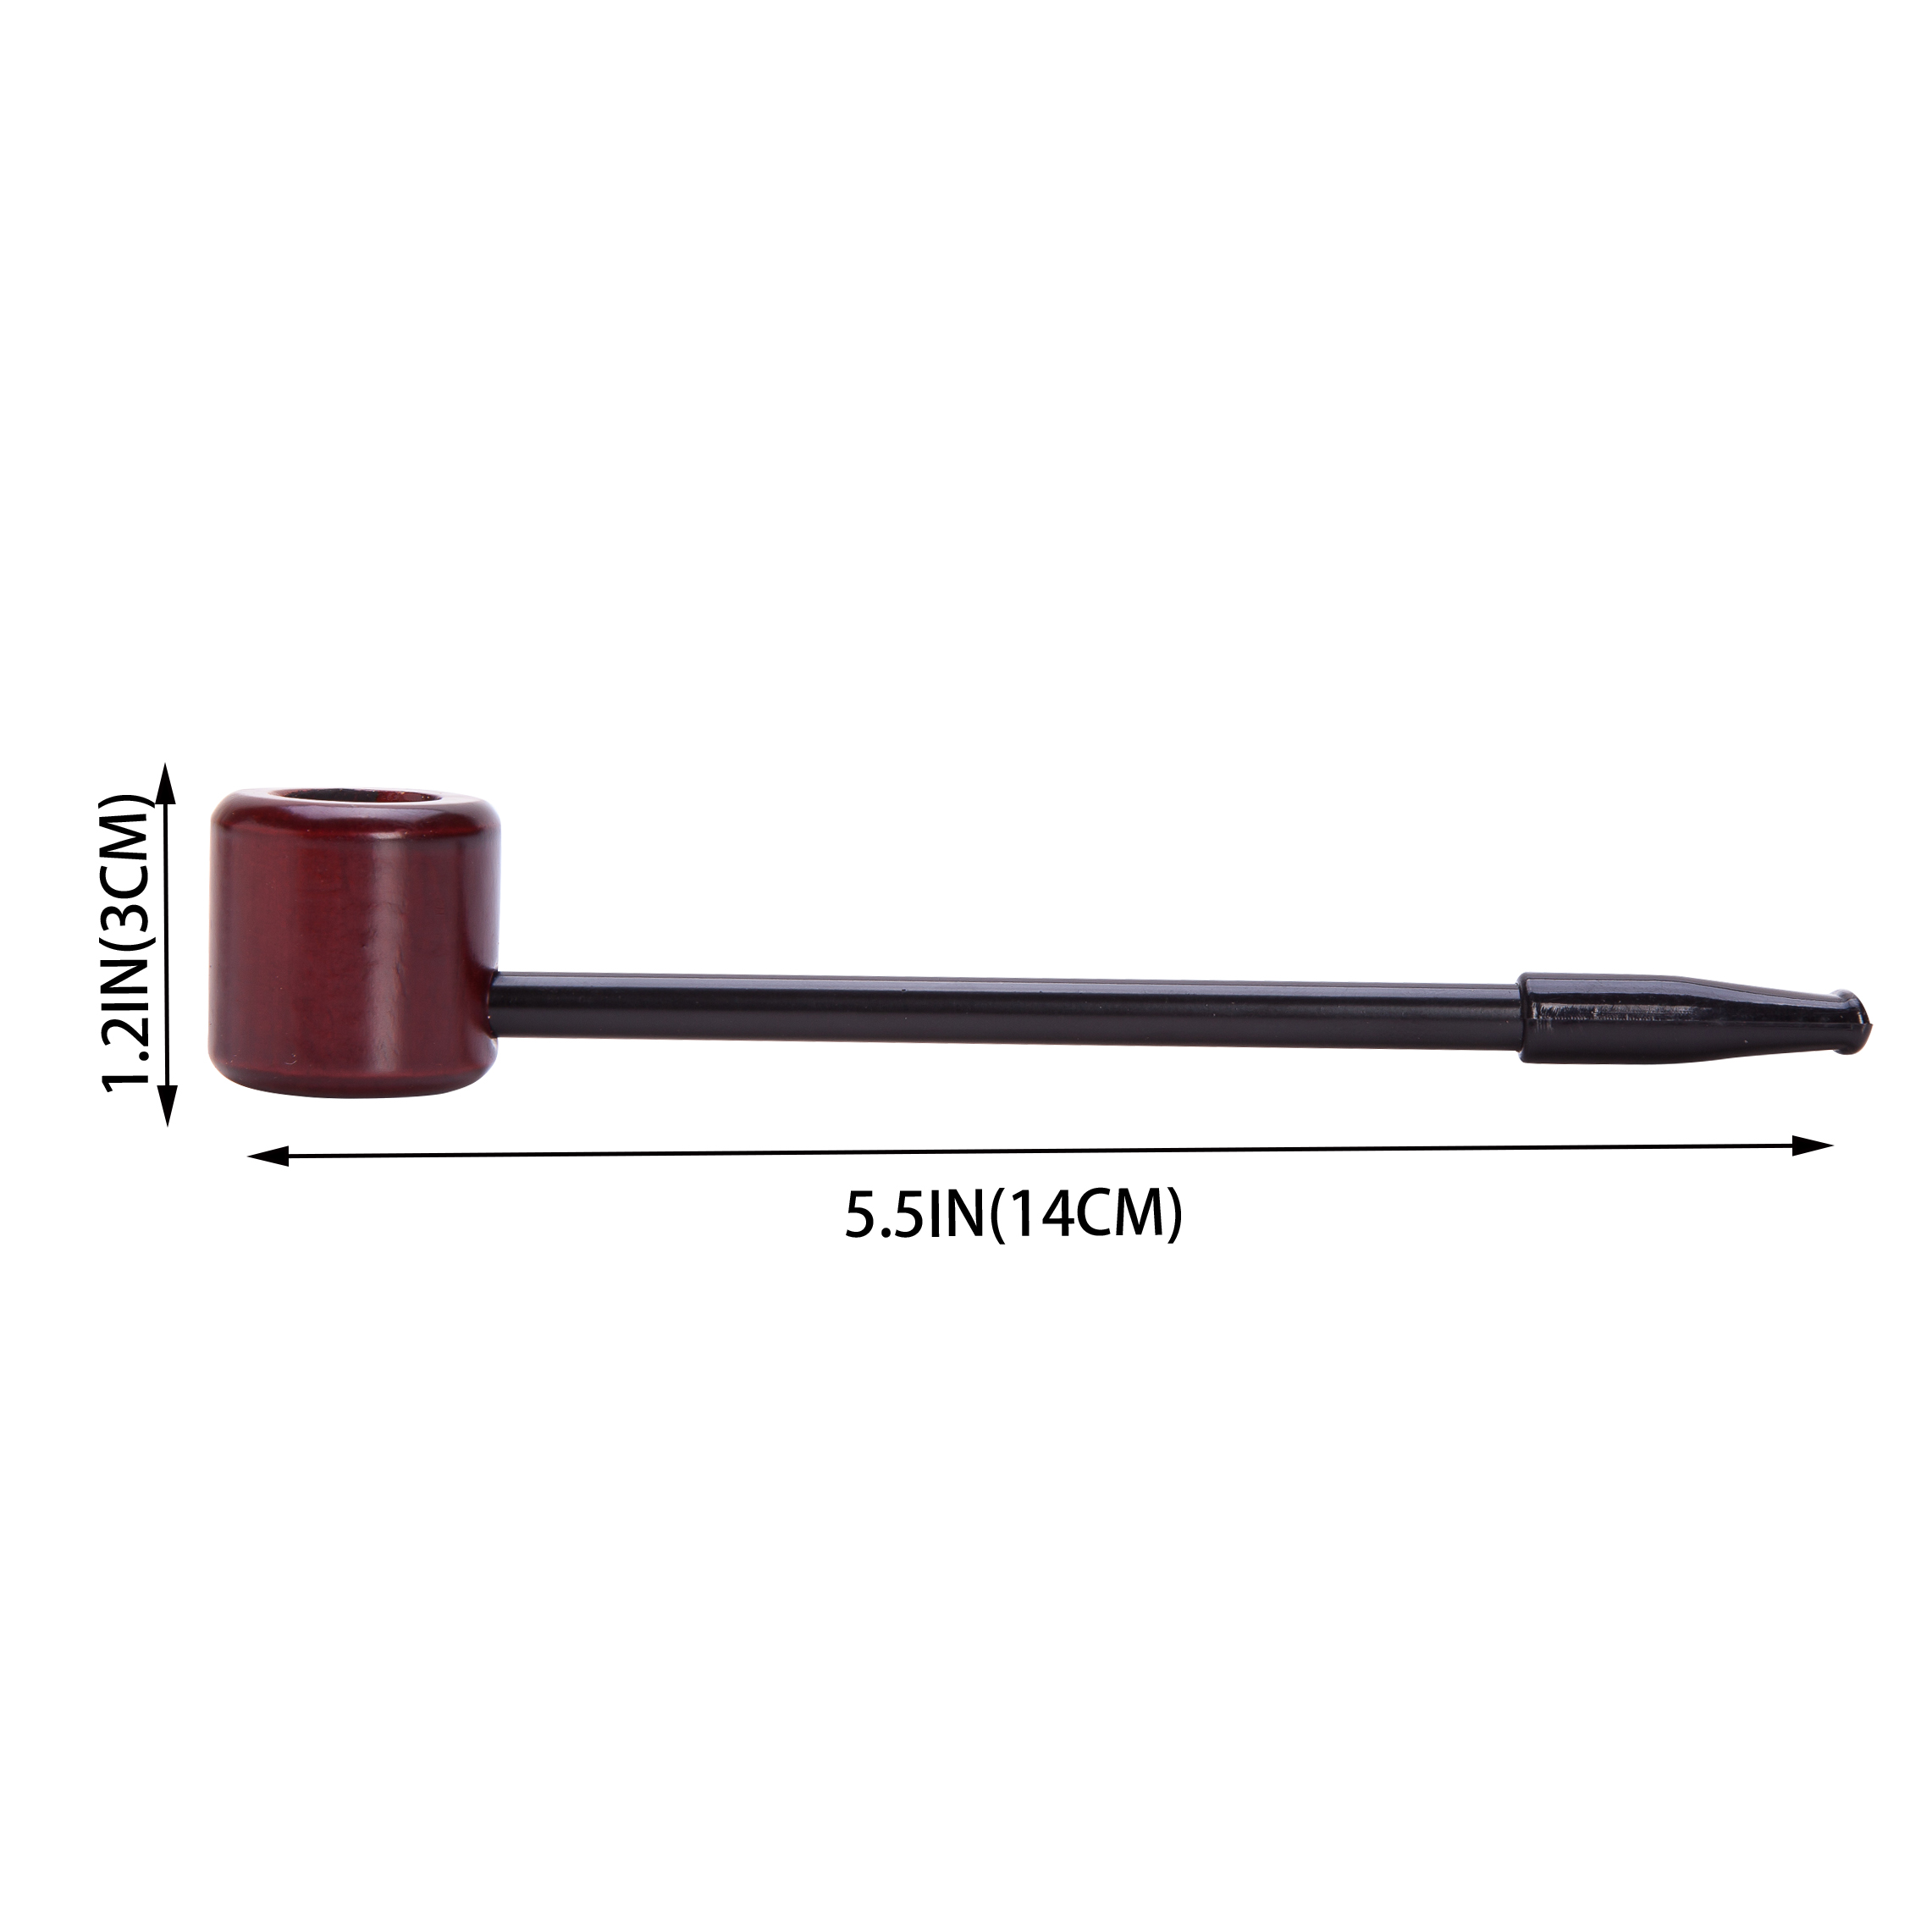 Durable light weight Straight Wooden Smoking Tobacco Pipe